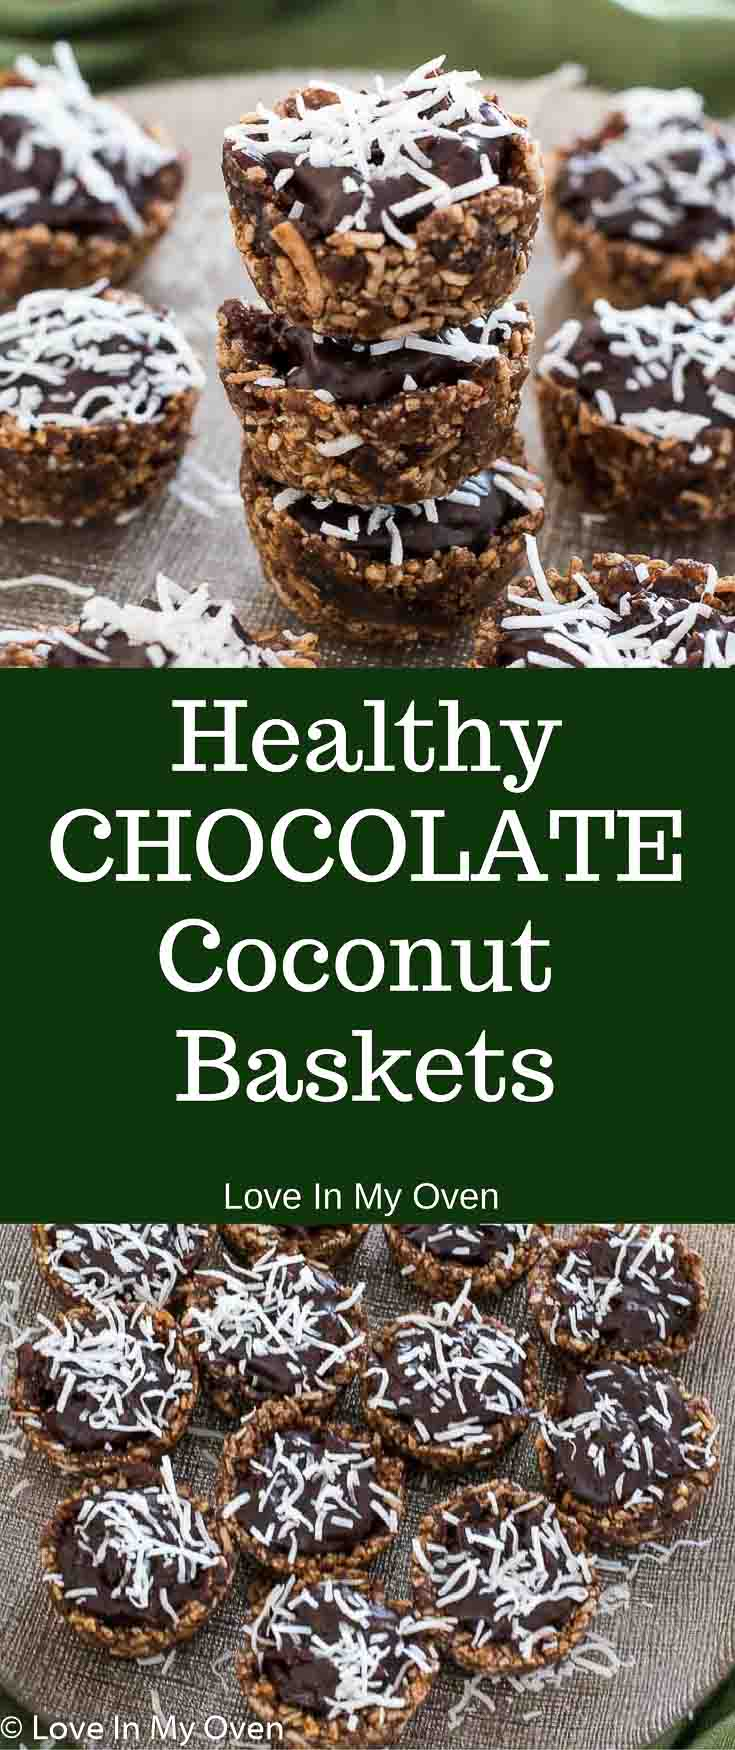 gluten-free dessert, healthier, medjool, chocolate-coconut, healthy dessert, bite-sized, kids